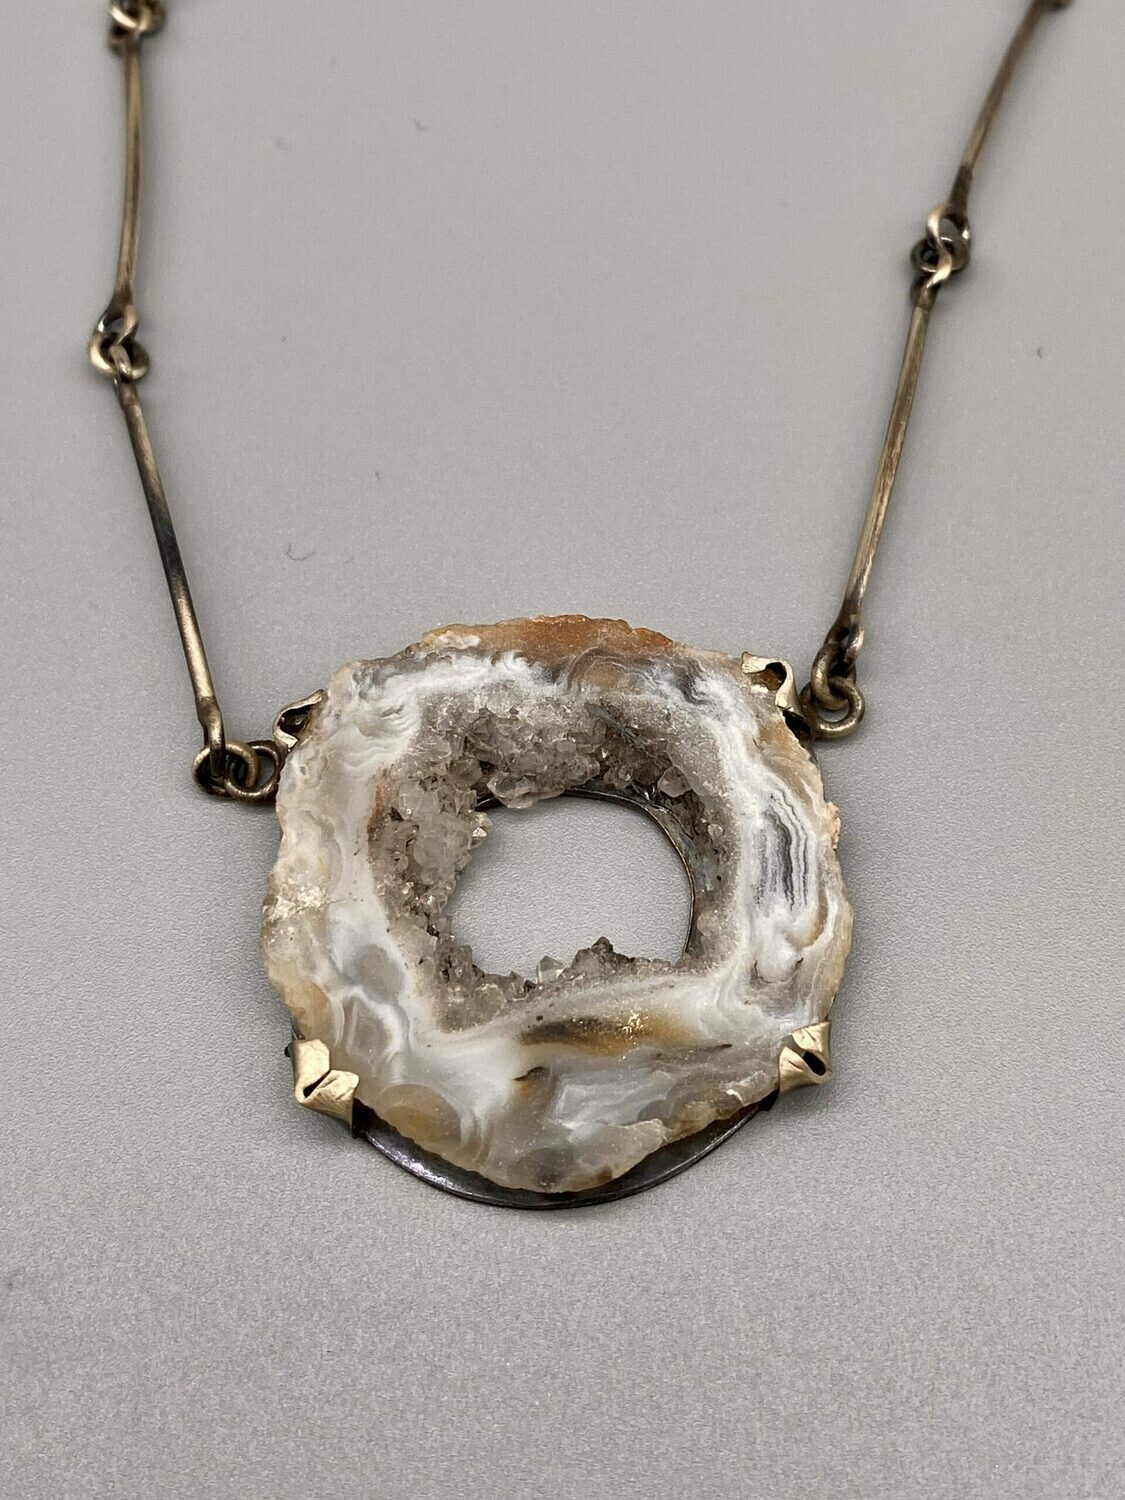 Geode One of a Kind Necklace